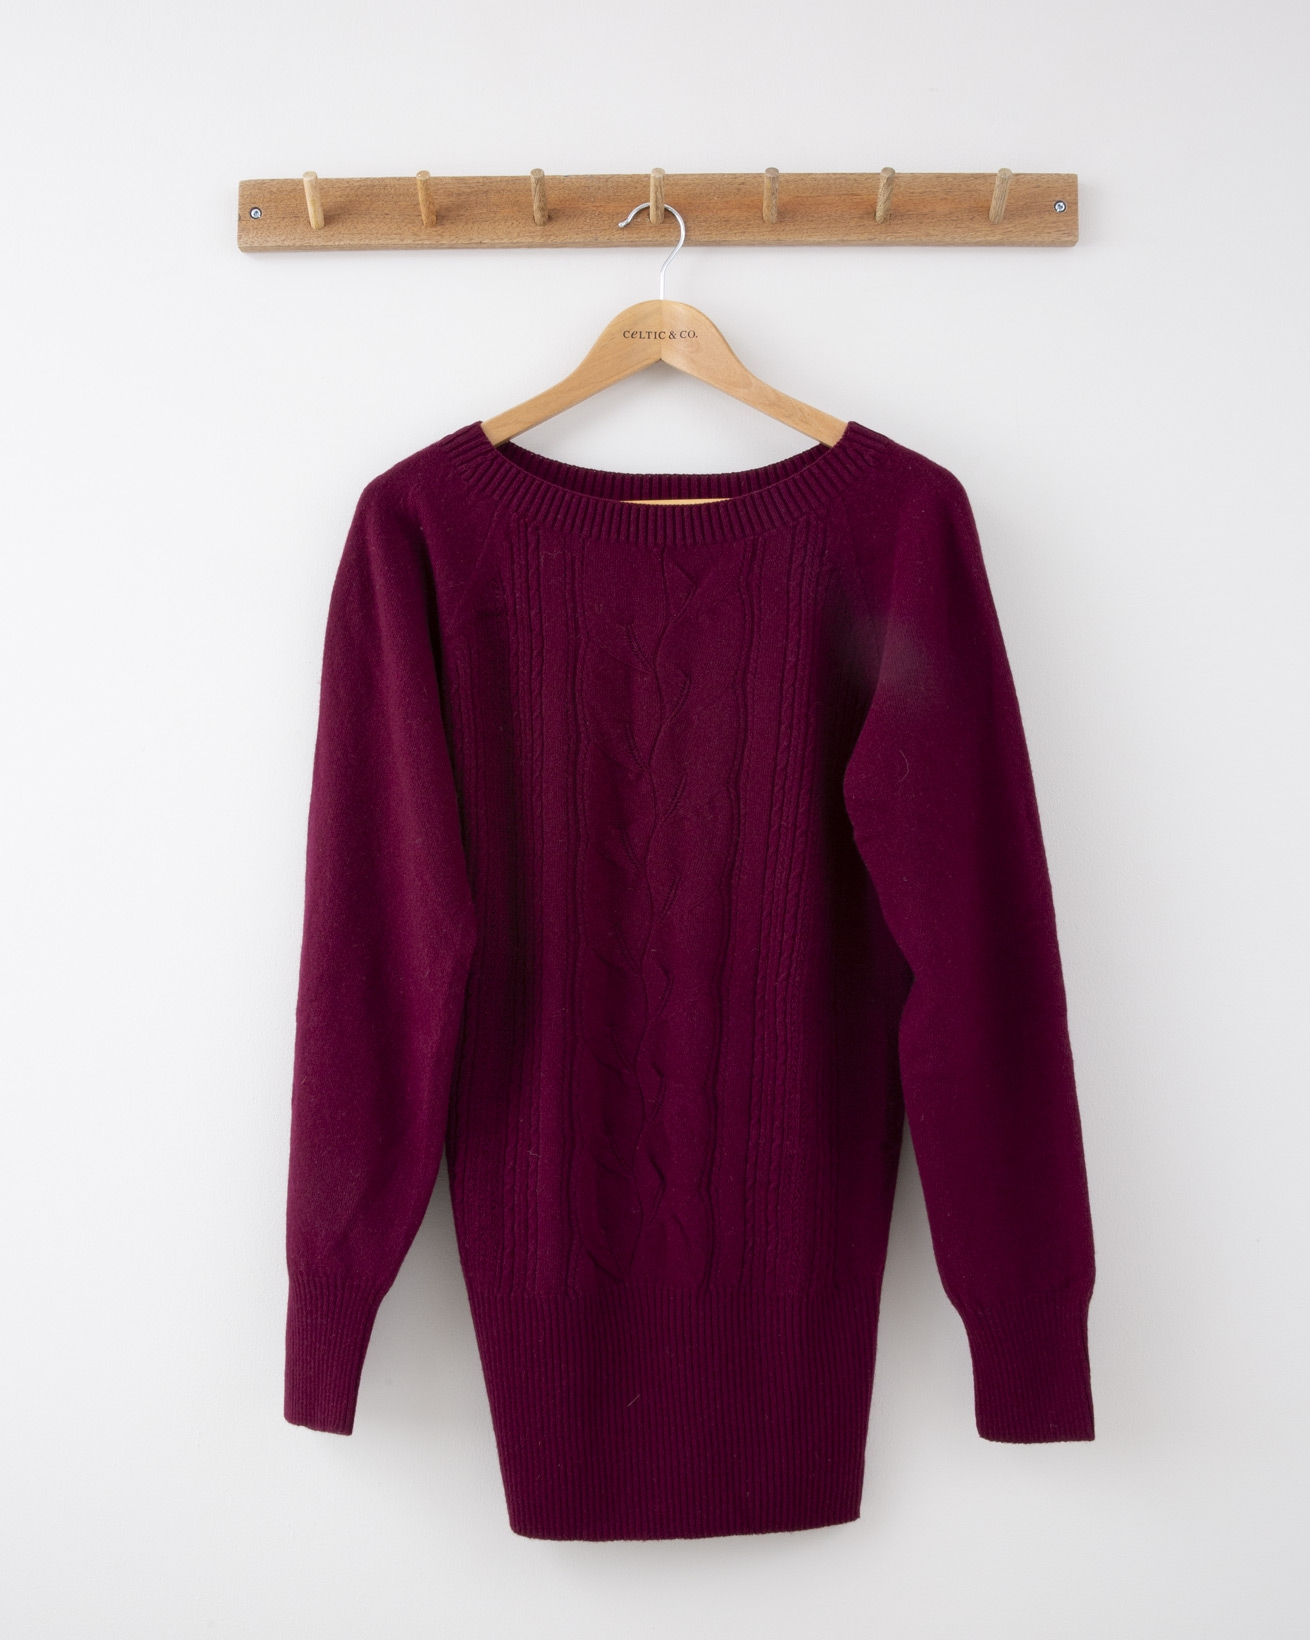 Lace Cable Supersoft Jumper - Small - Claret - 1277